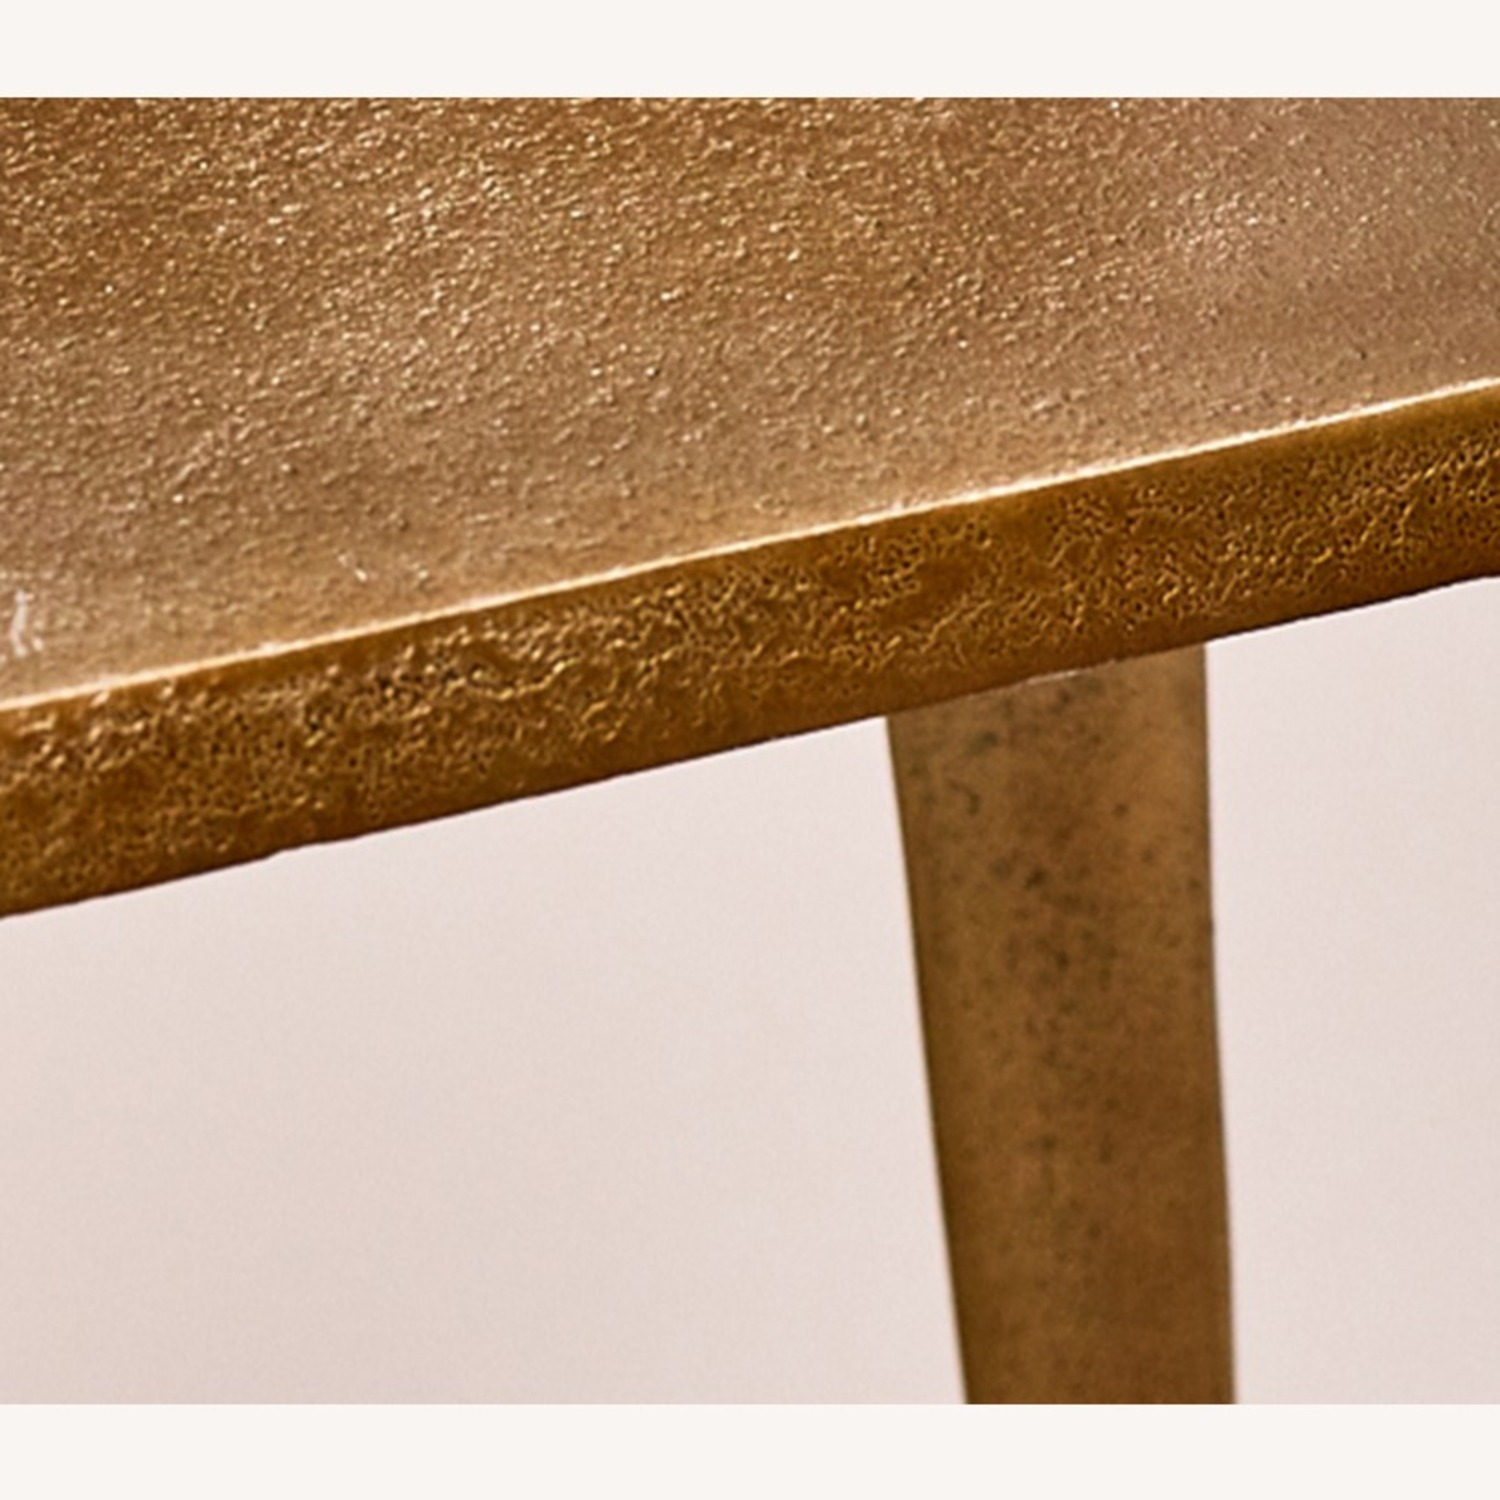 Four Hands Vireo Side Table - image-5